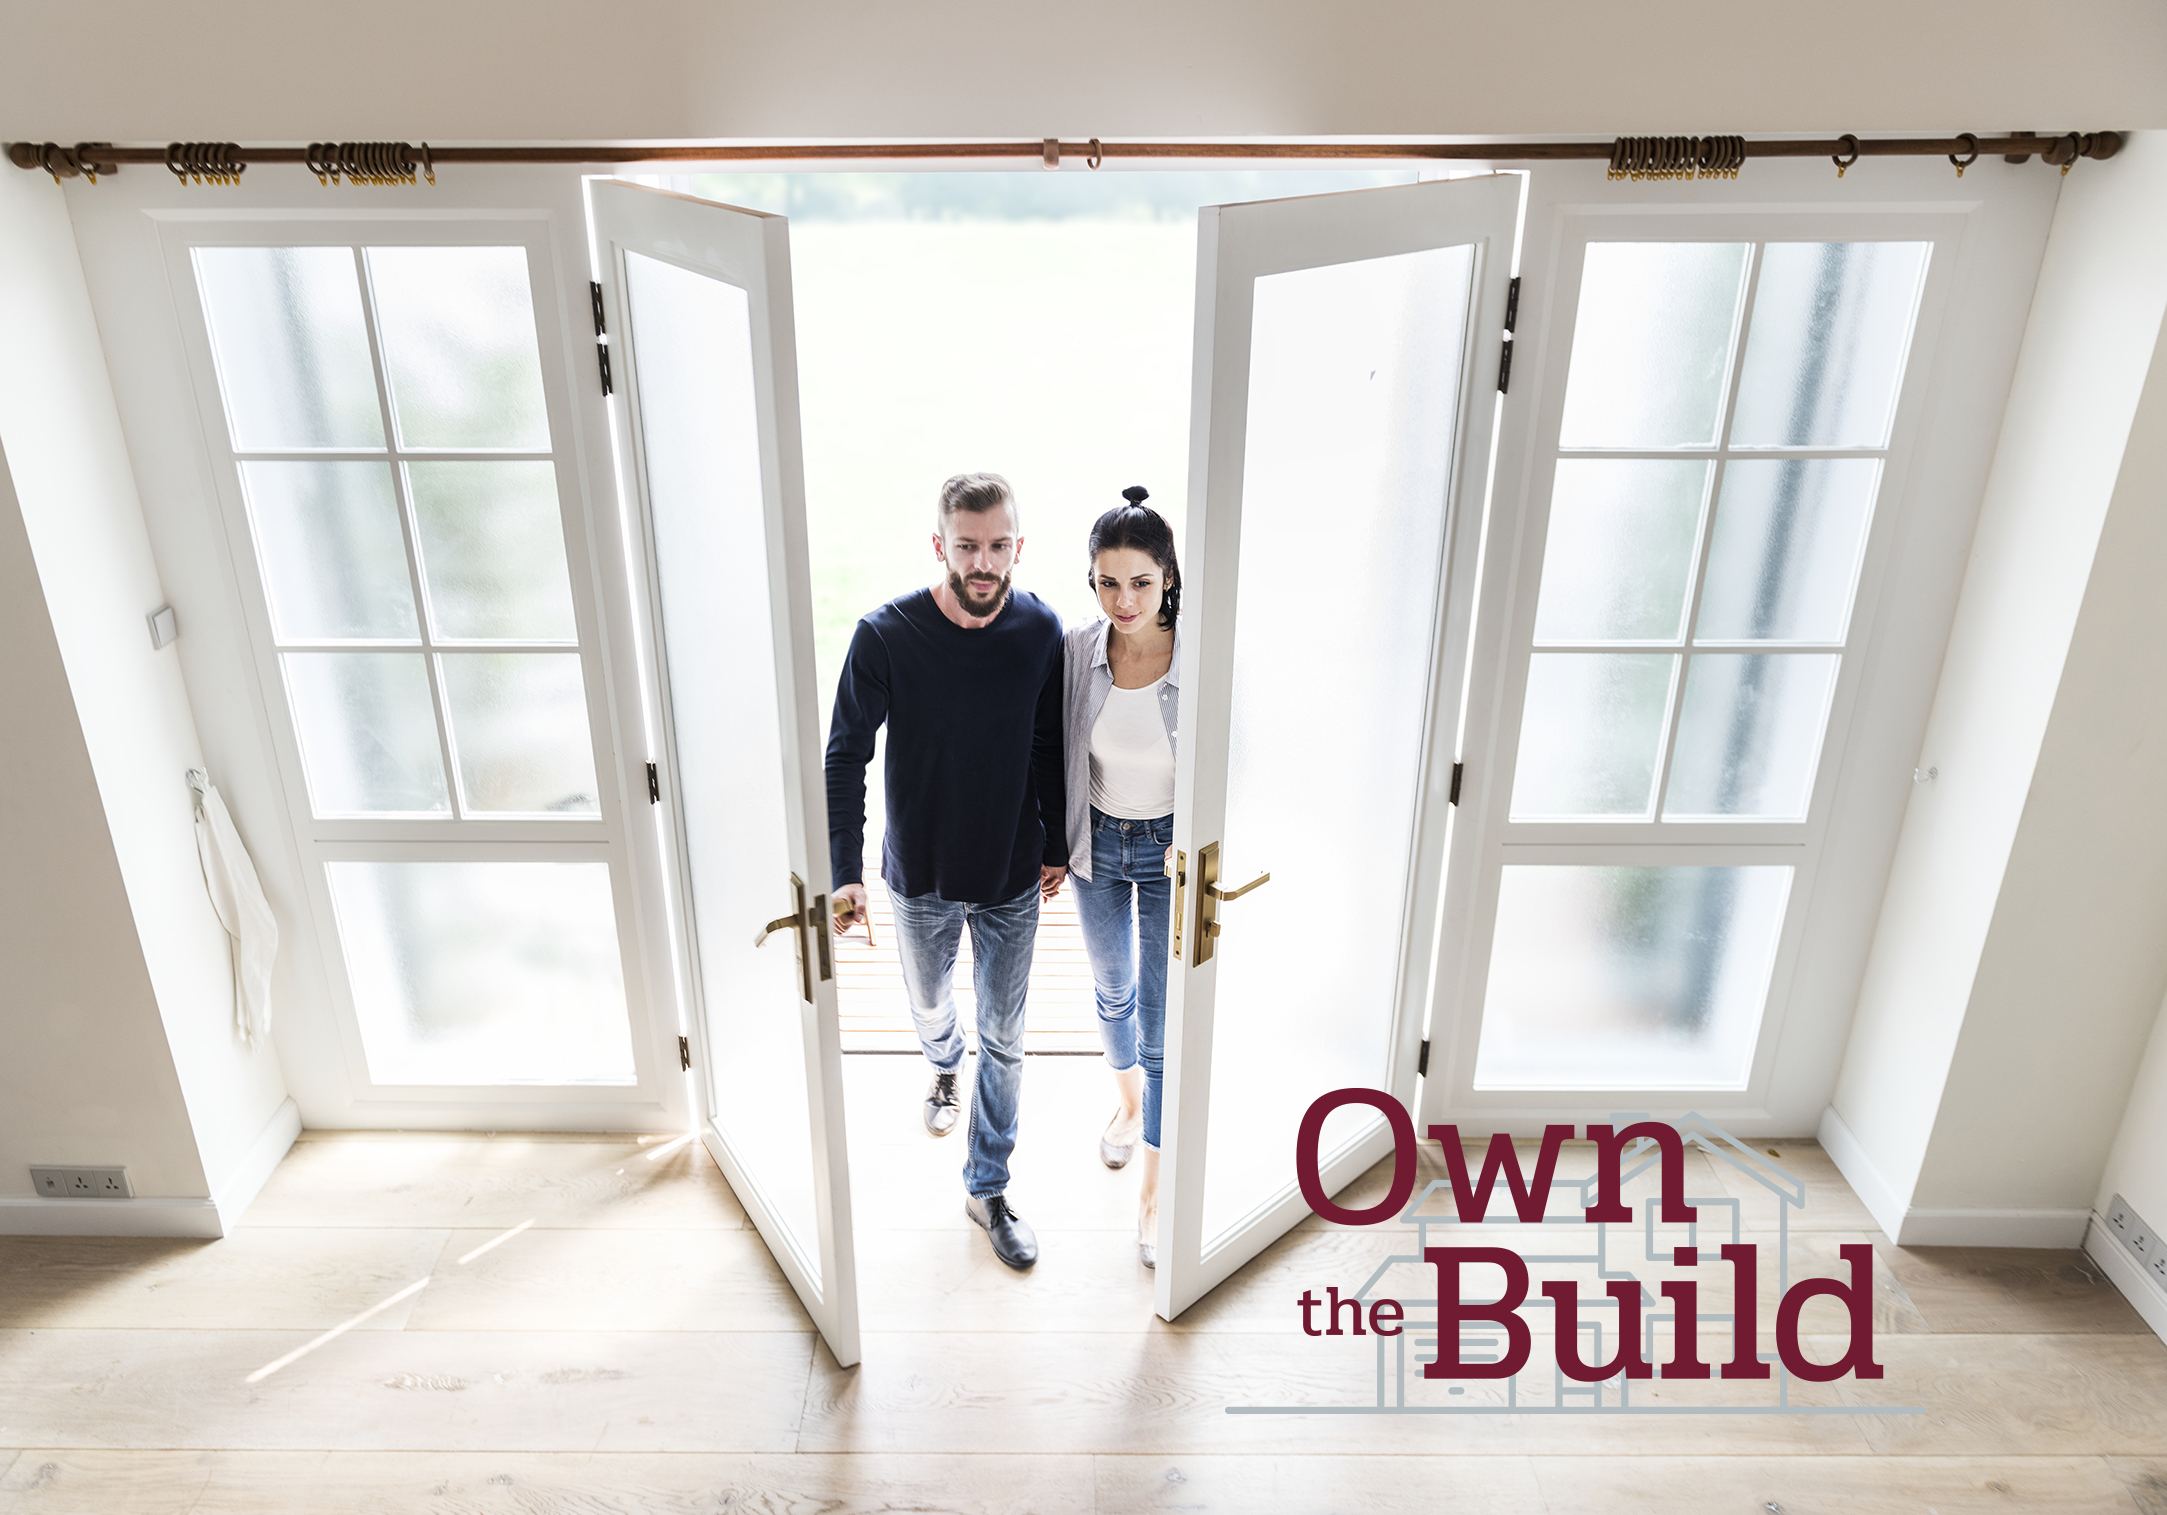 May 1-Kensington-Intro to Own the Build2-1